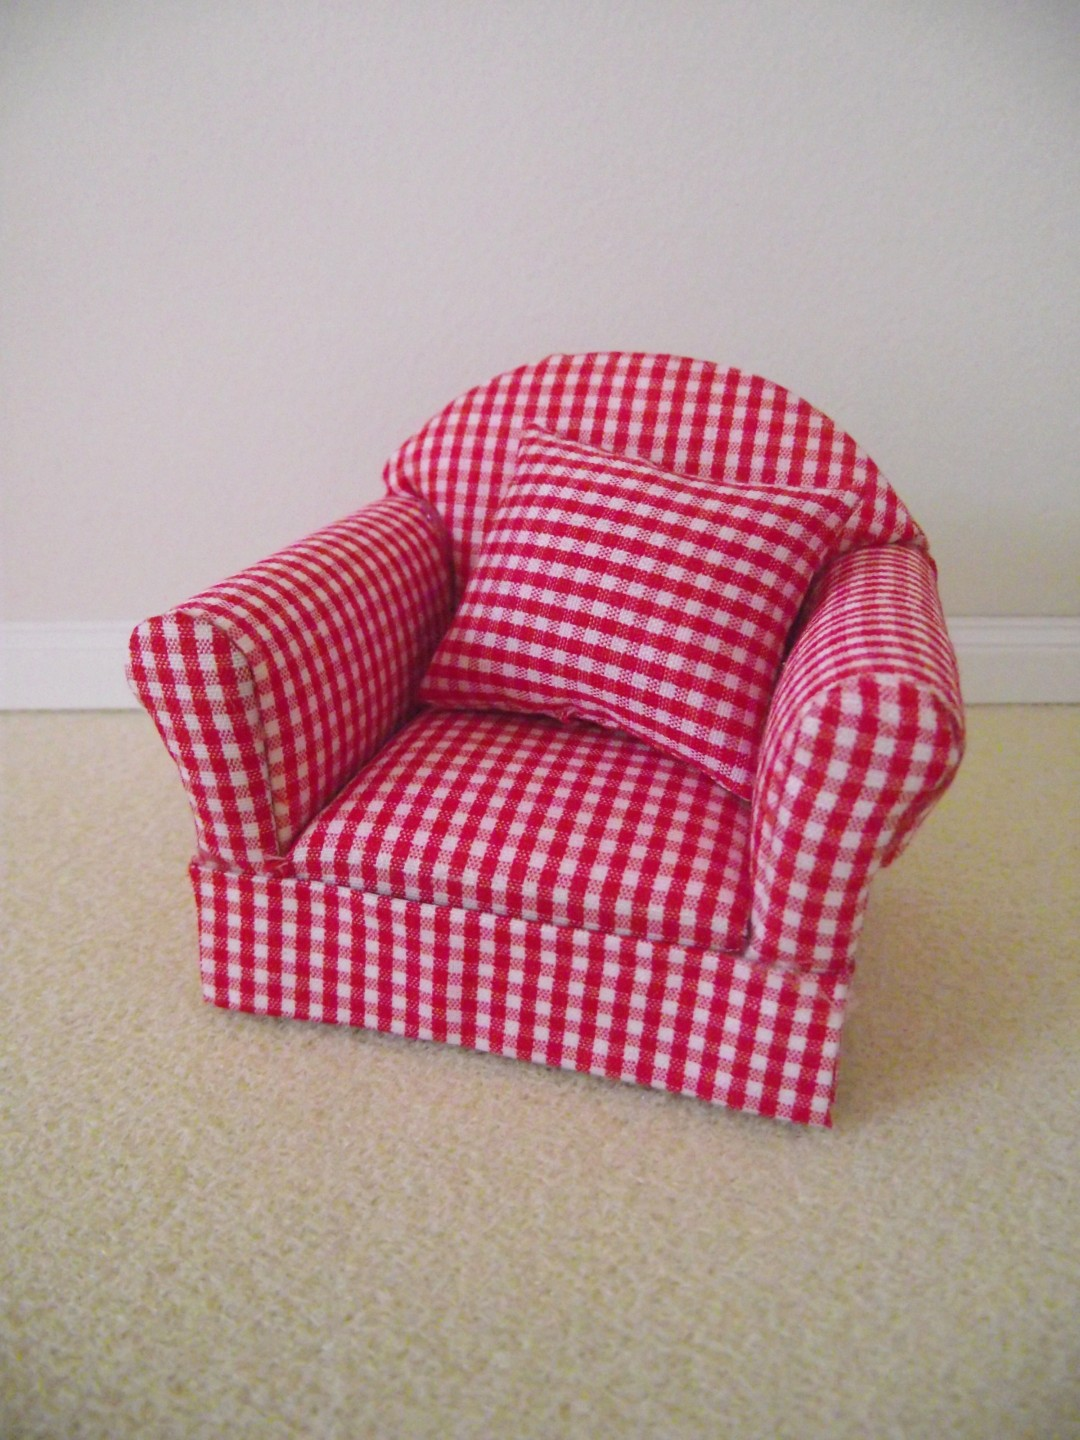 Gingham Chair Miniature Doll House 12th Scale Furniture Red Gingham